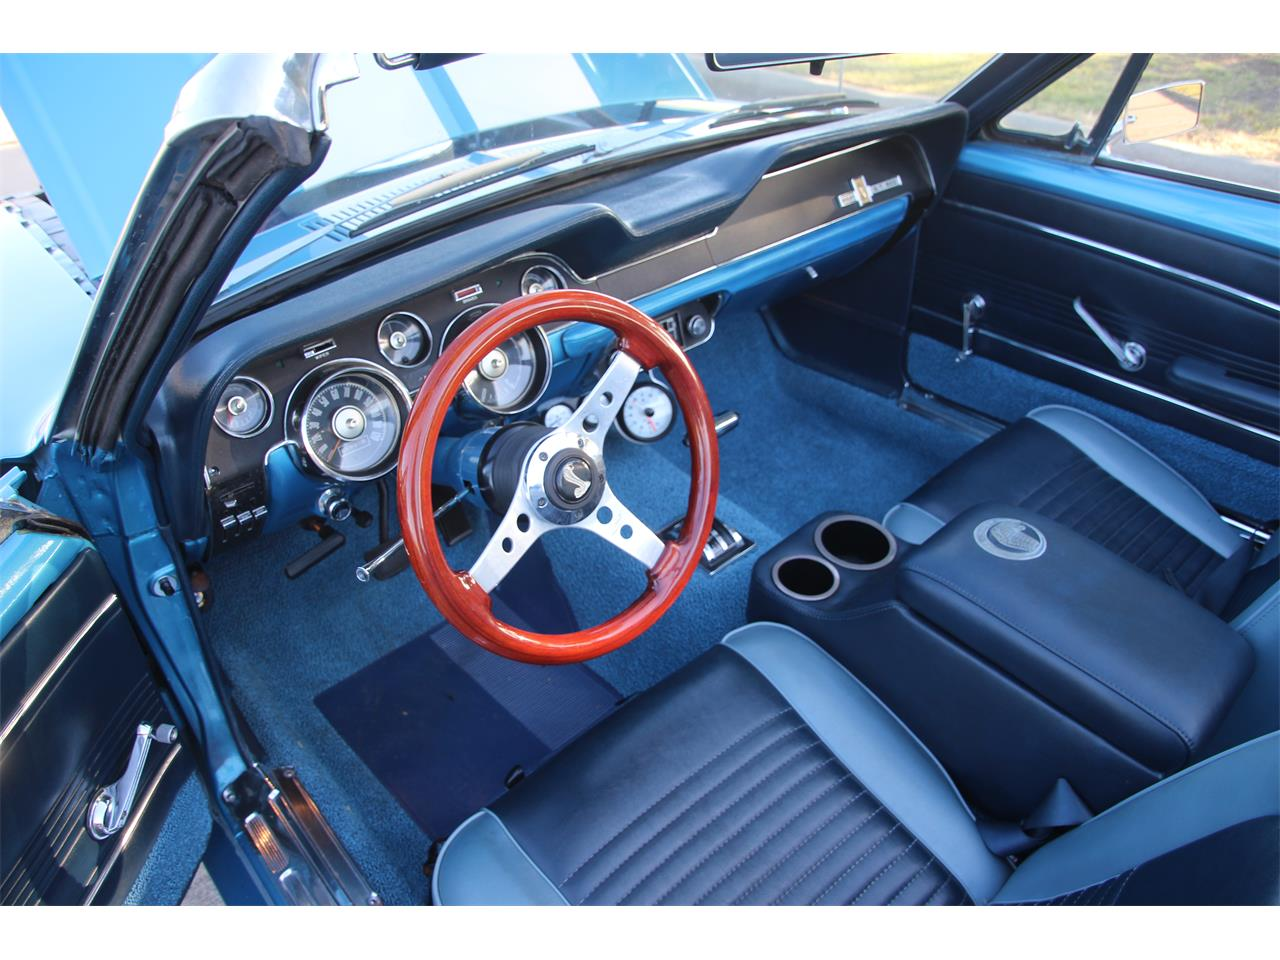 Large Picture of Classic 1967 Mustang Shelby GT500  located in Richardson Texas - $41,000.00 Offered by a Private Seller - NP08